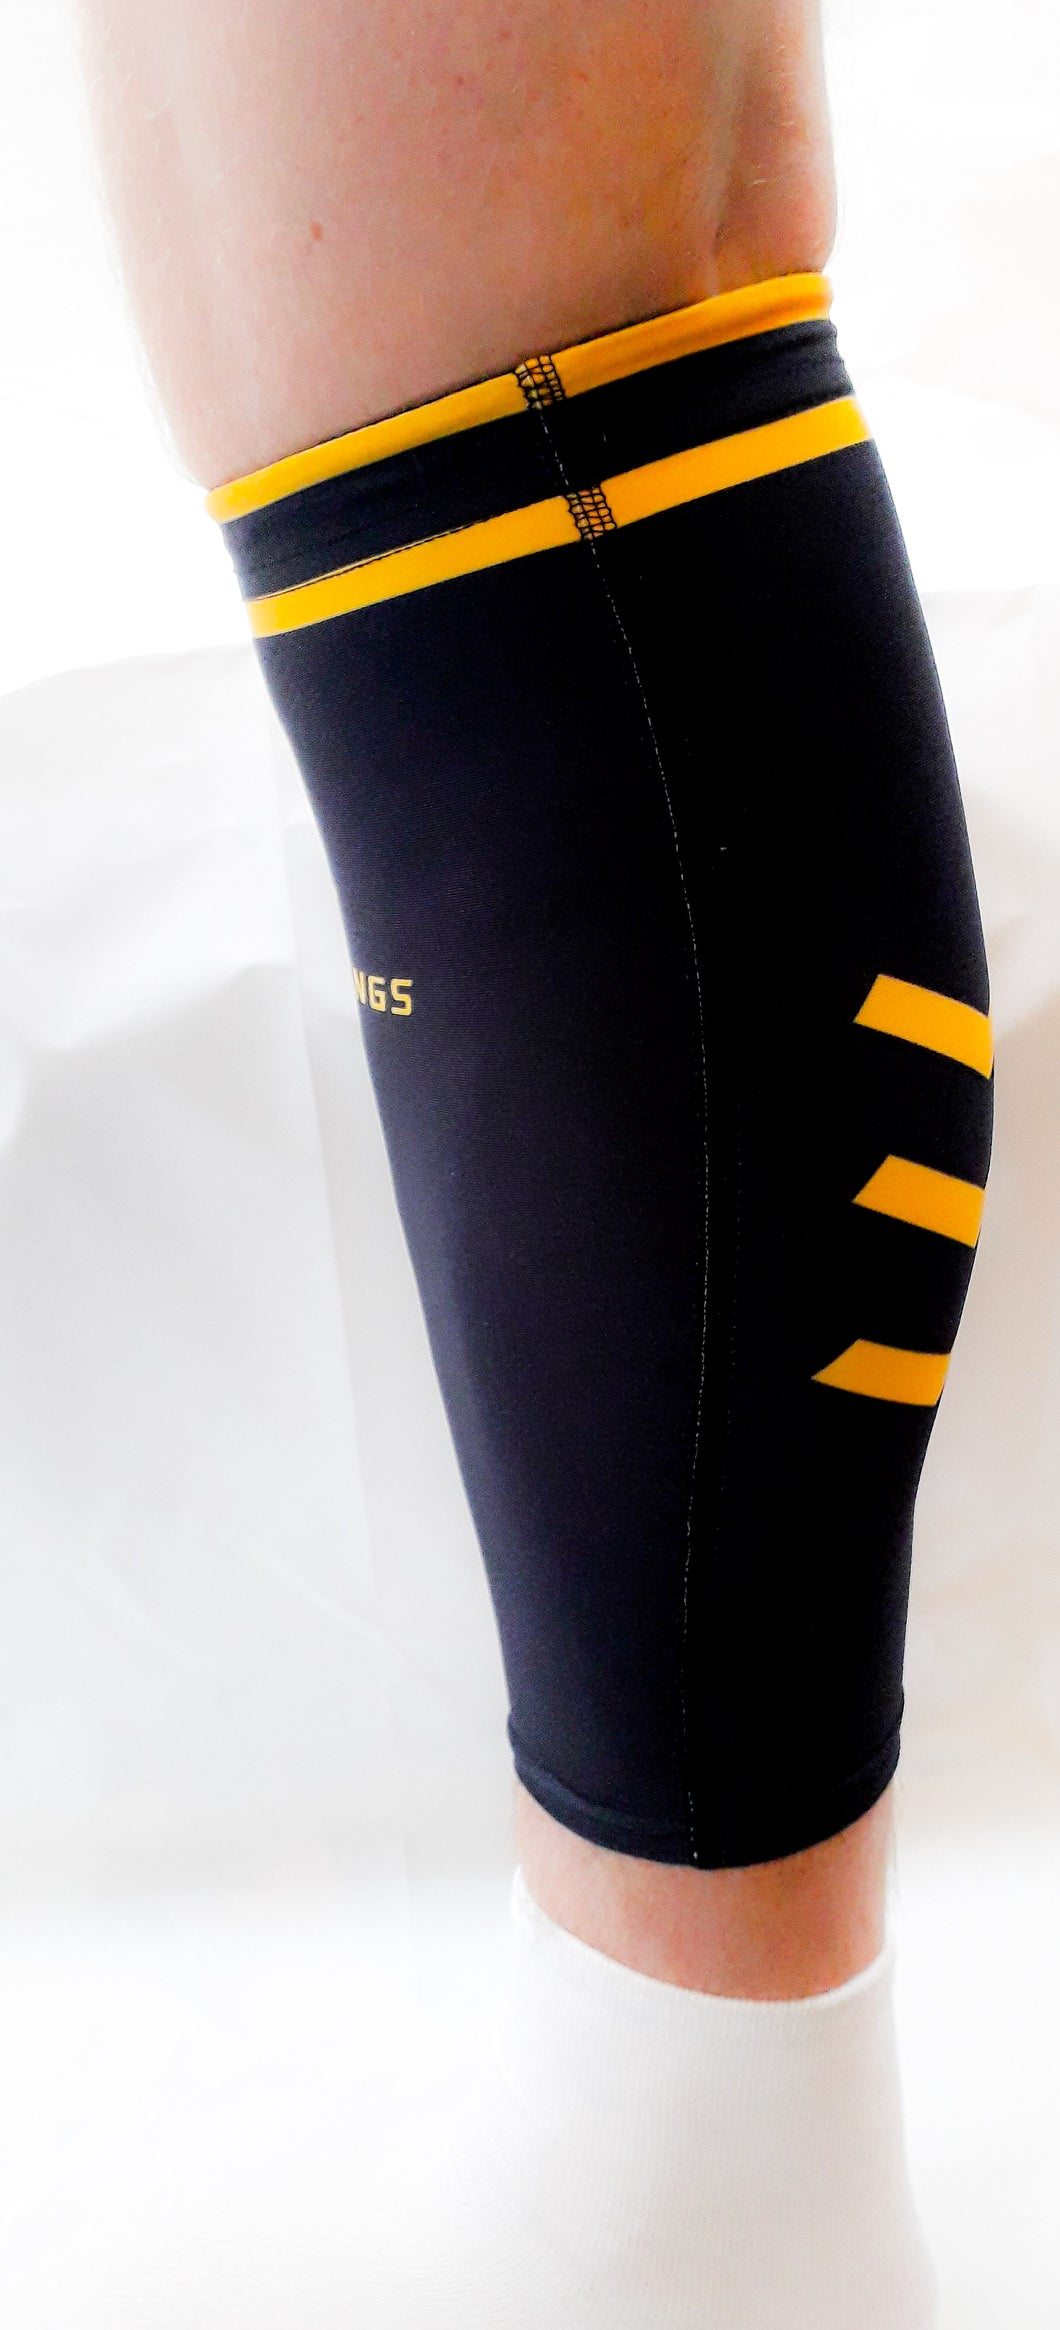 Calf Compression Sleeves-GAA